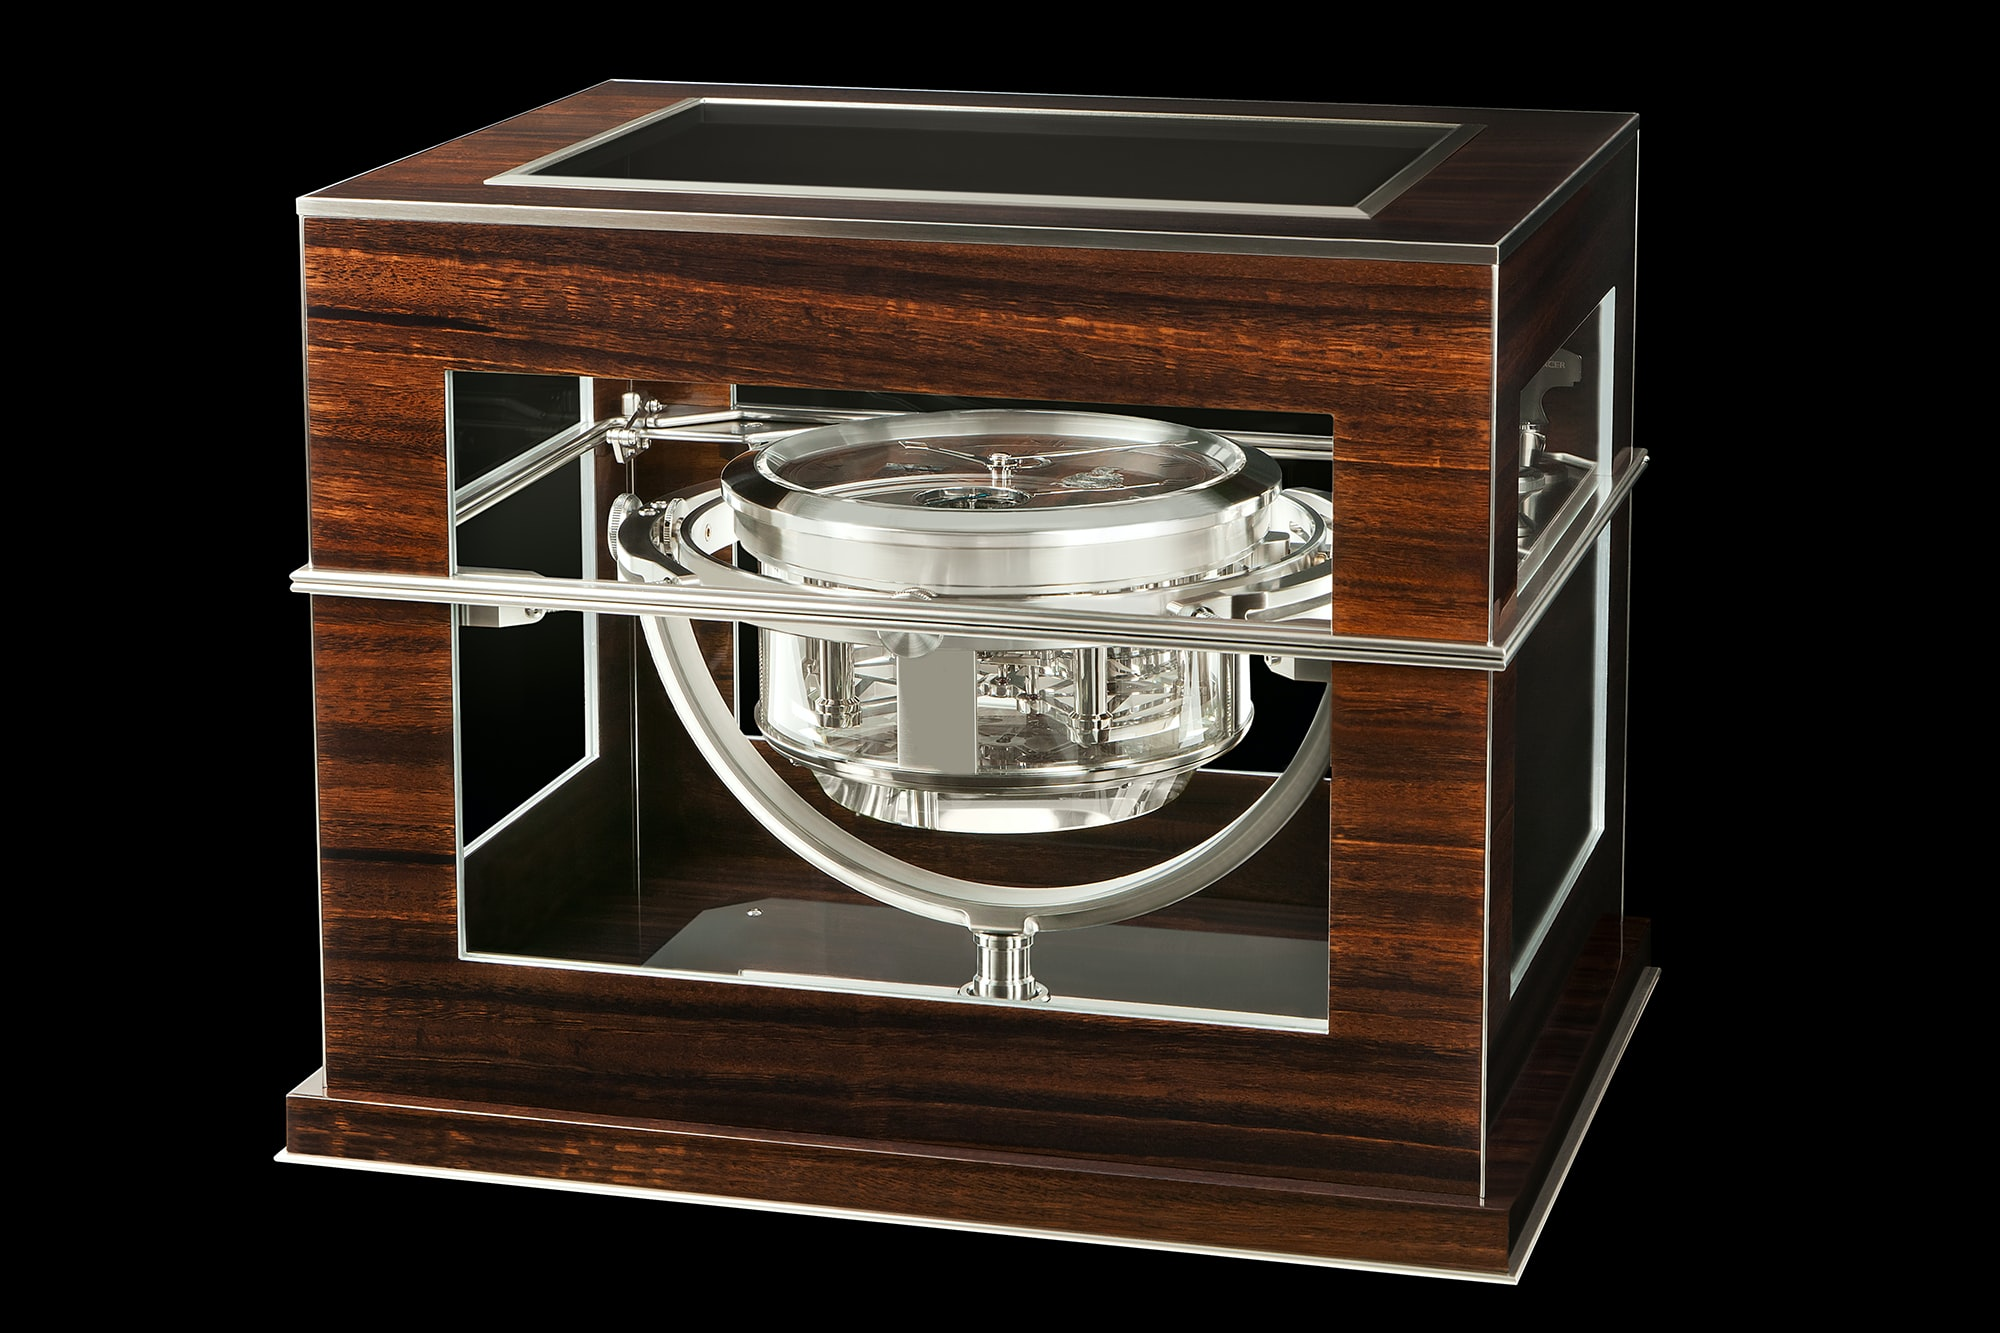 Thomas Mercer Marine Chronometer Introducing: A Thomas Mercer One-Off Marine Chronometer Made To Accompany A Re-Creation Of Shackleton's Epic Voyage Introducing: A Thomas Mercer One-Off Marine Chronometer Made To Accompany A Re-Creation Of Shackleton's Epic Voyage 2